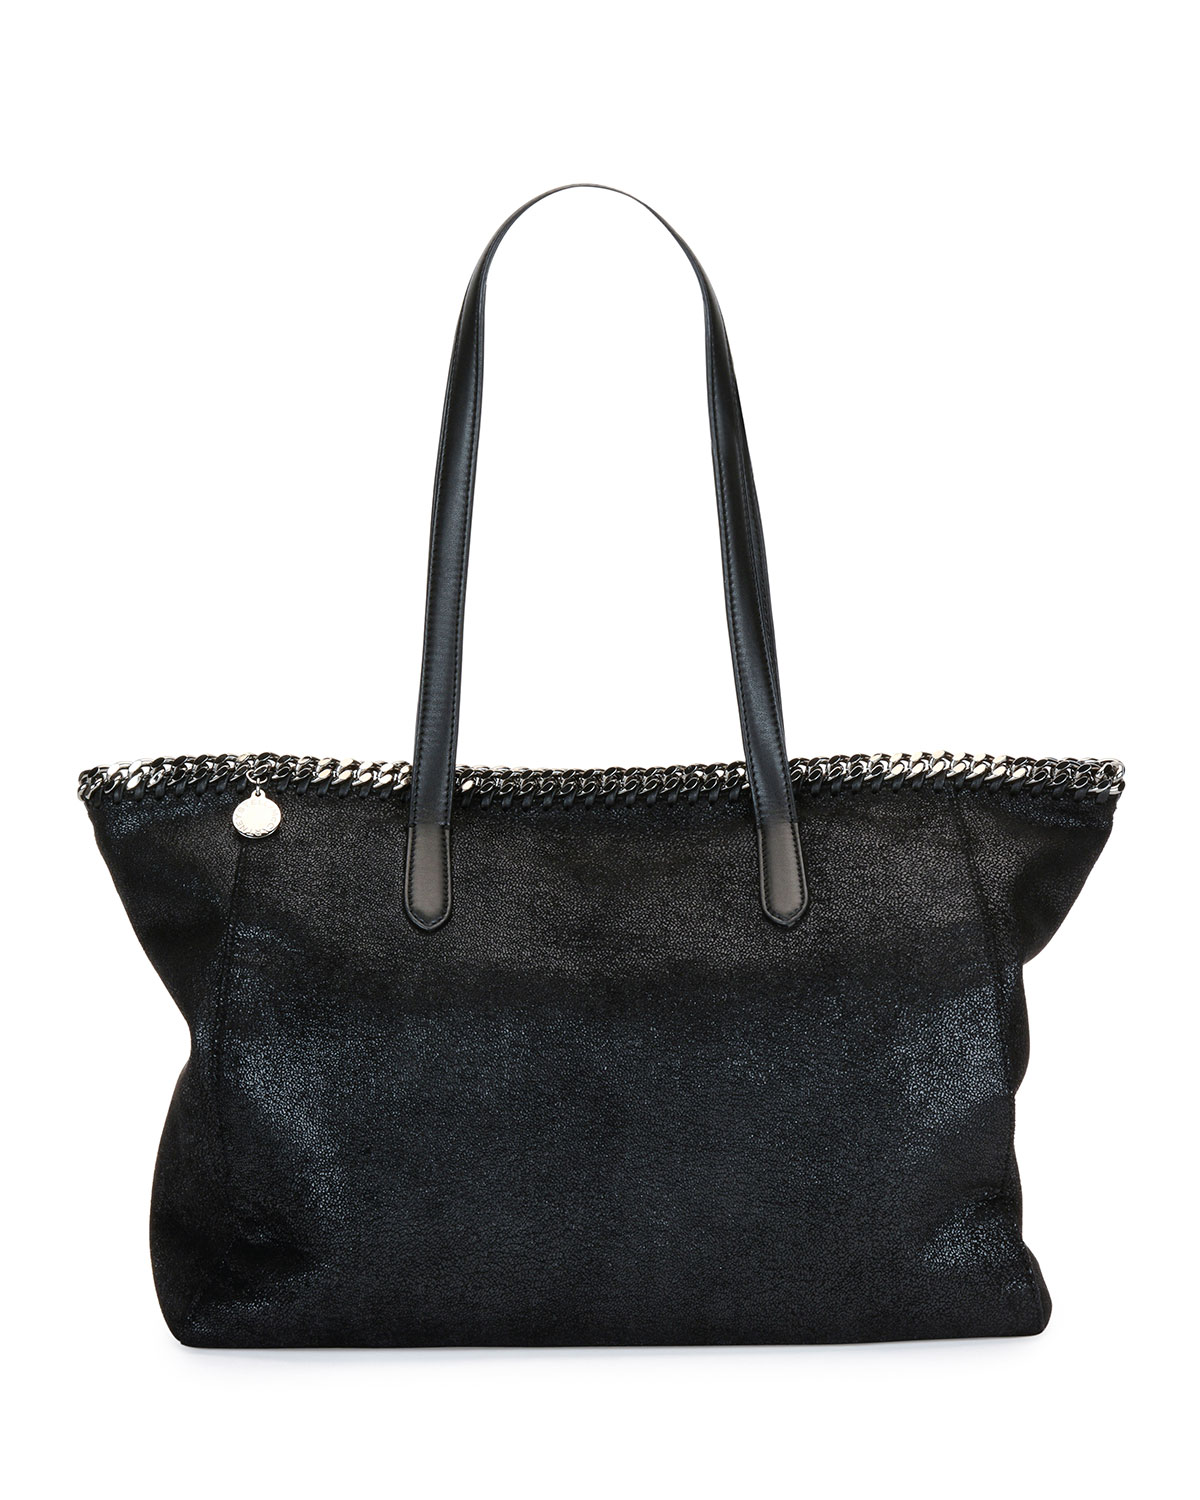 bef357d749 Stella McCartney Falabella Shaggy Deer East-West Small Tote Bag ...